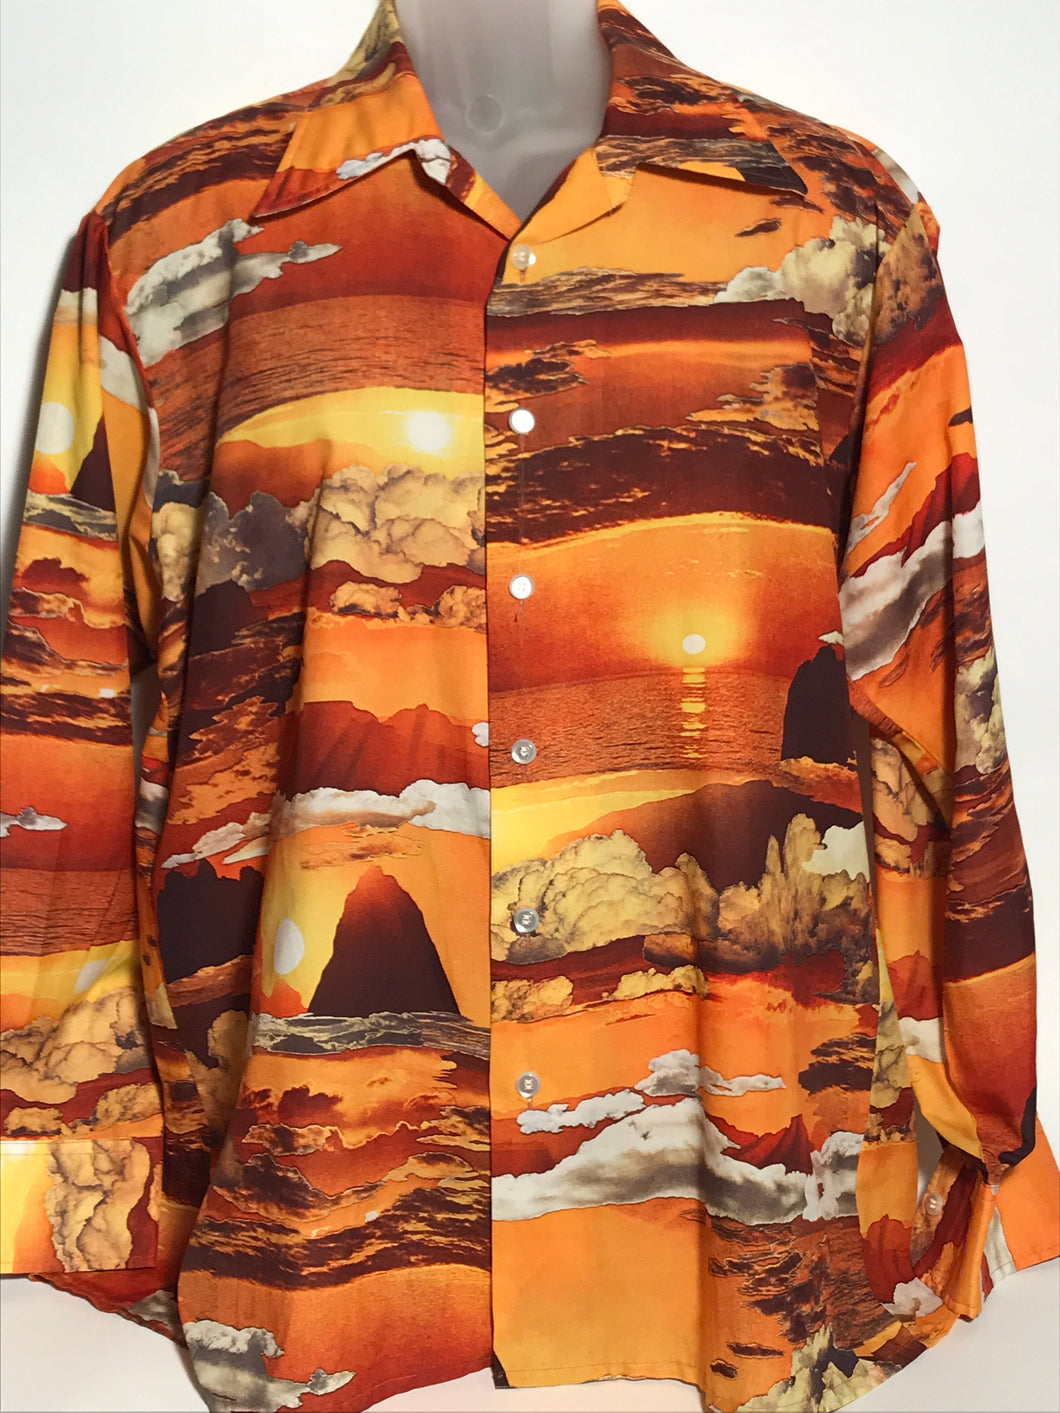 Vintage 1970s Men's Joe Namath Sunset Disco Shirt Extra Large RENTAL XL